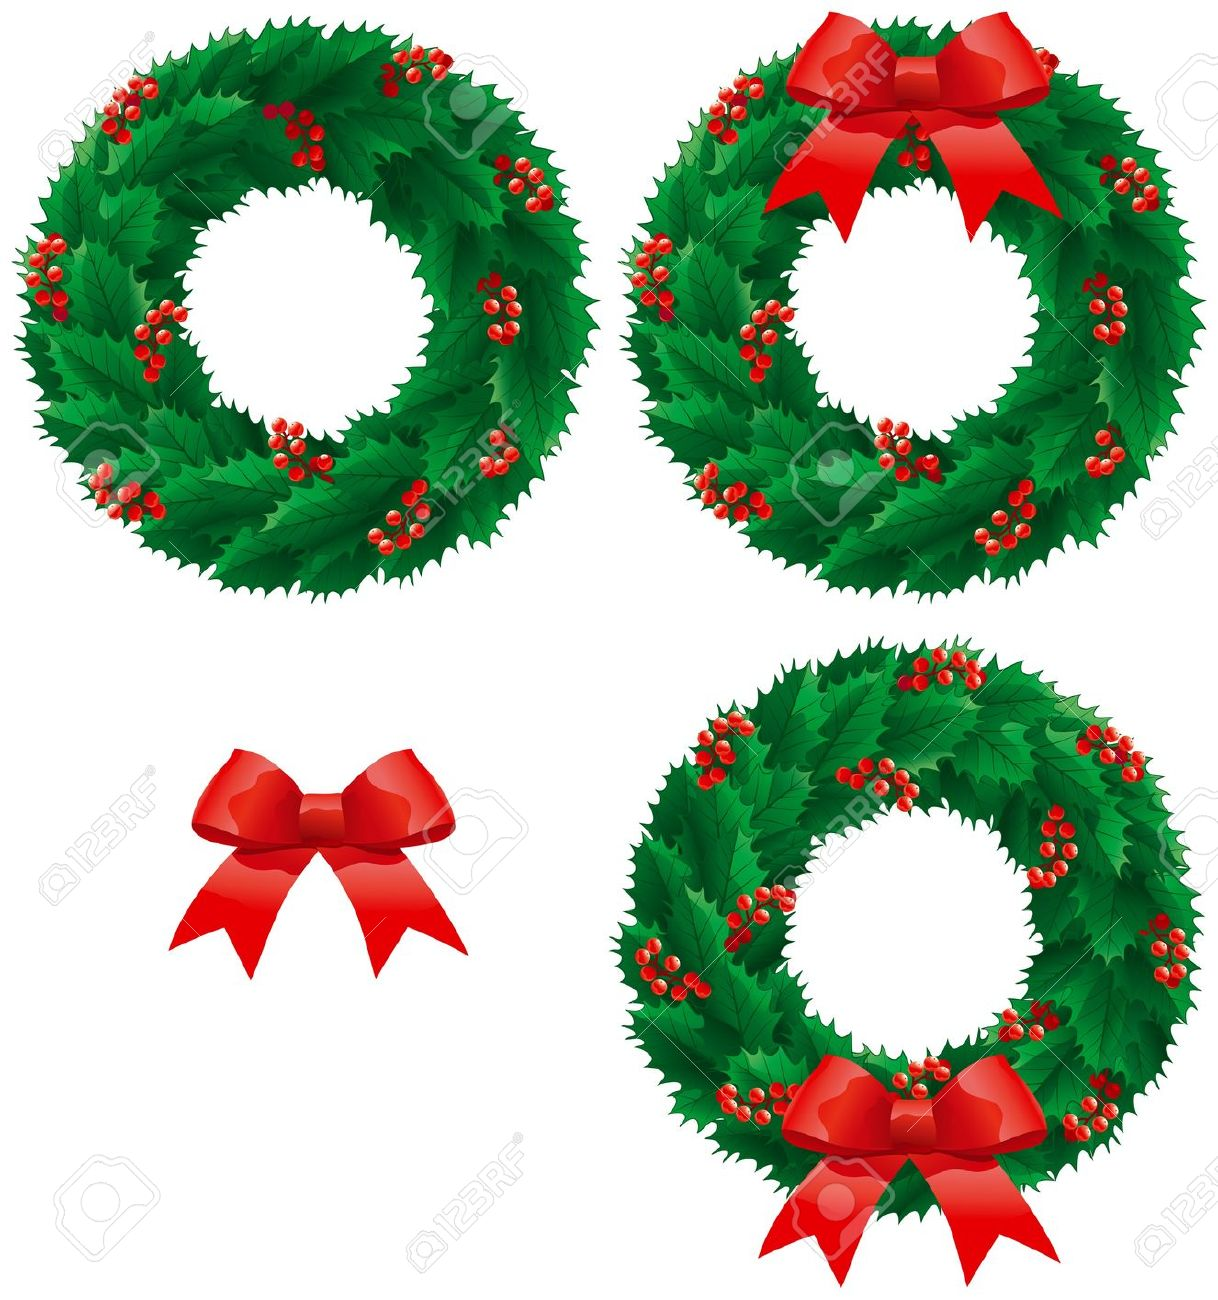 26,564 Wreath Border Stock Vector Illustration And Royalty Free.